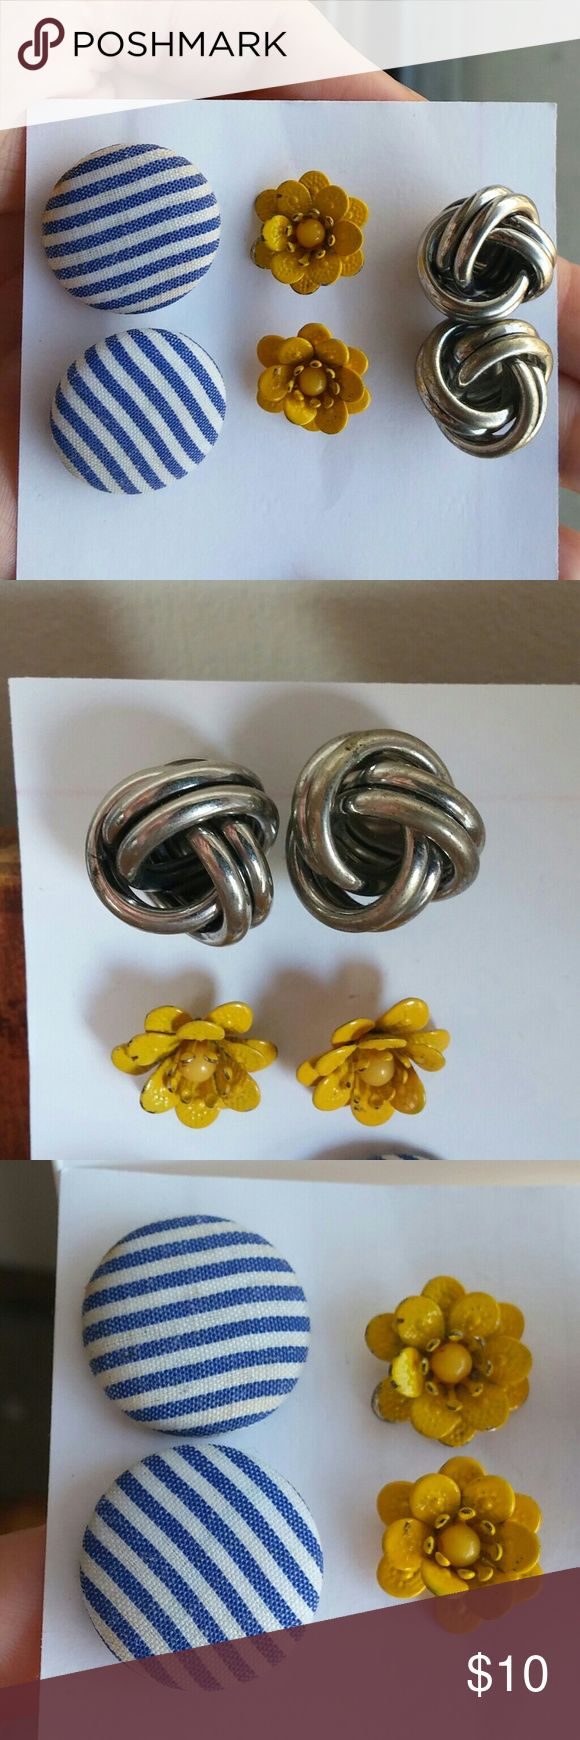 3 pairs of cute stud earrings! A great set of cute earrings for just $10!  Silver knot earrings are .75 in across Yellow flower earrings are .5 in across Blue and white fabric button earrings are .75 in across  Some minor wear and tear, please see photos.  Bundle with my other items for even more savings! Vintage Jewelry Earrings